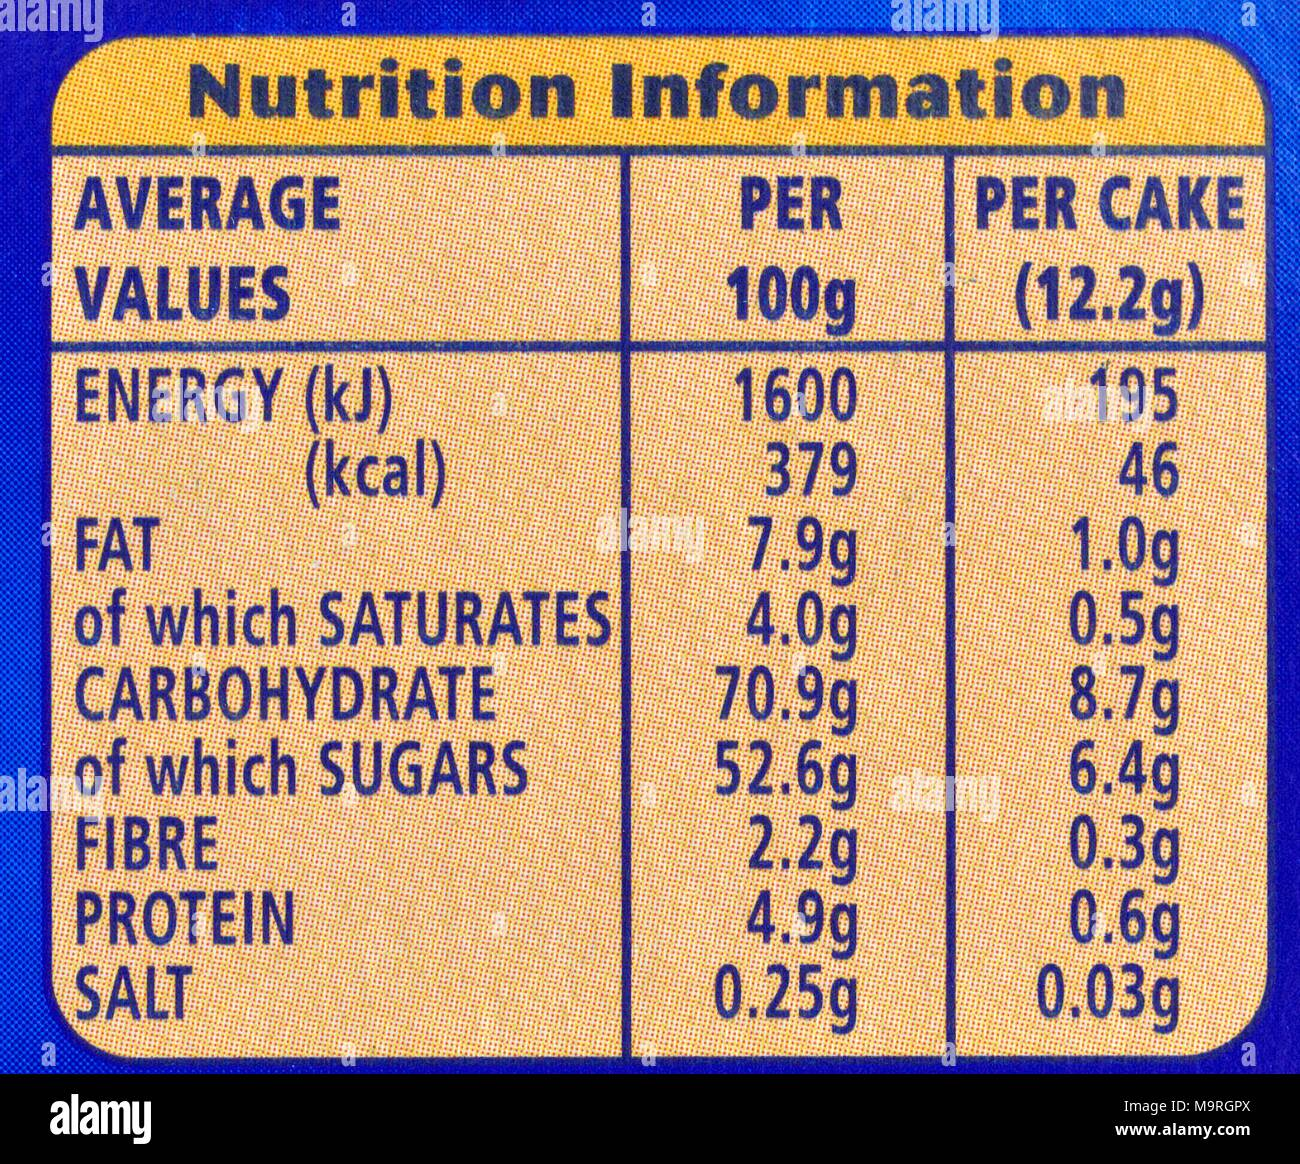 Nutrition Information Product Labelling Stock Photo Alamy